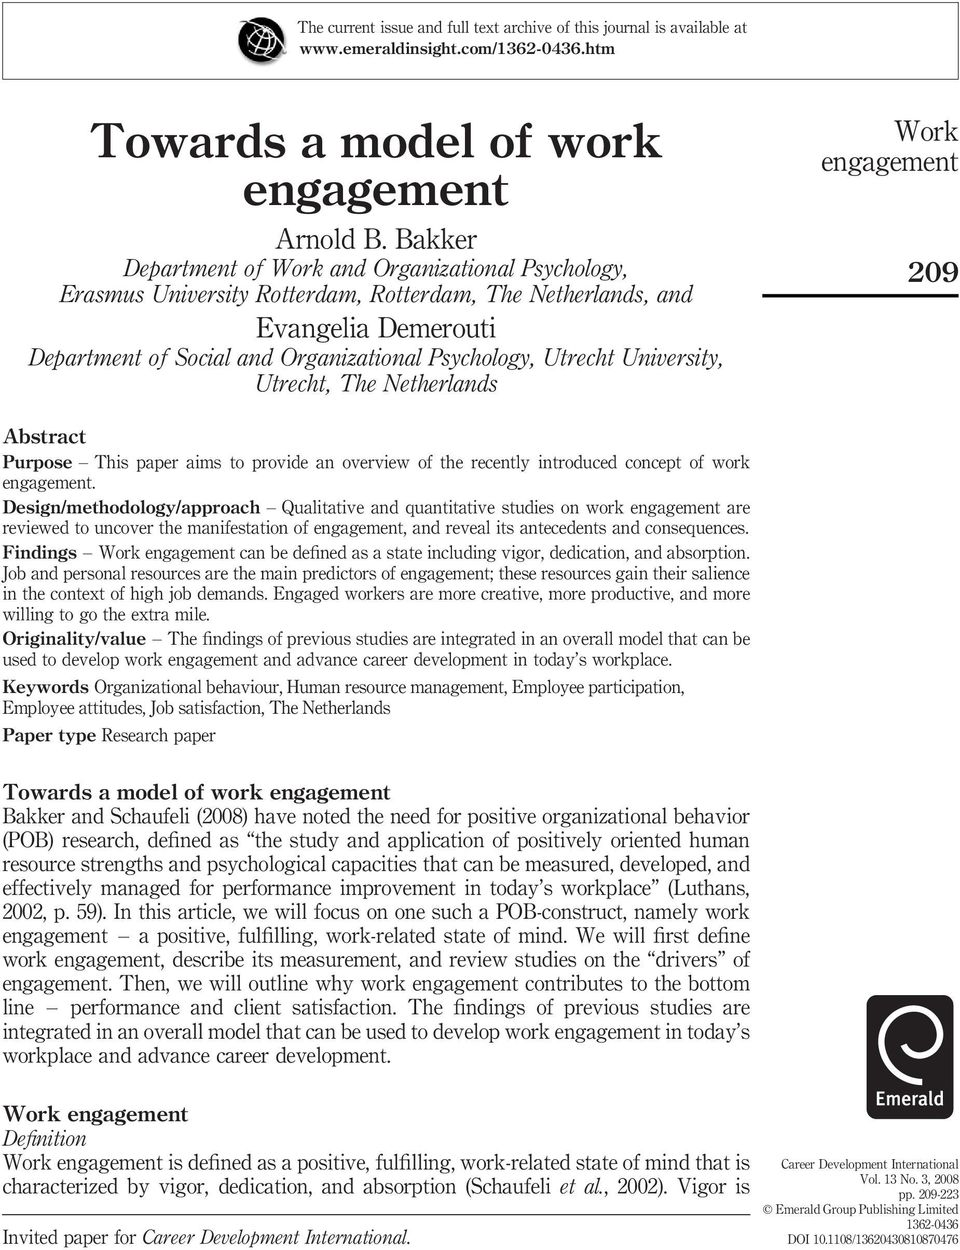 University, Utrecht, The Netherlands 209 Abstract Purpose This paper aims to provide an overview of the recently introduced concept of work.